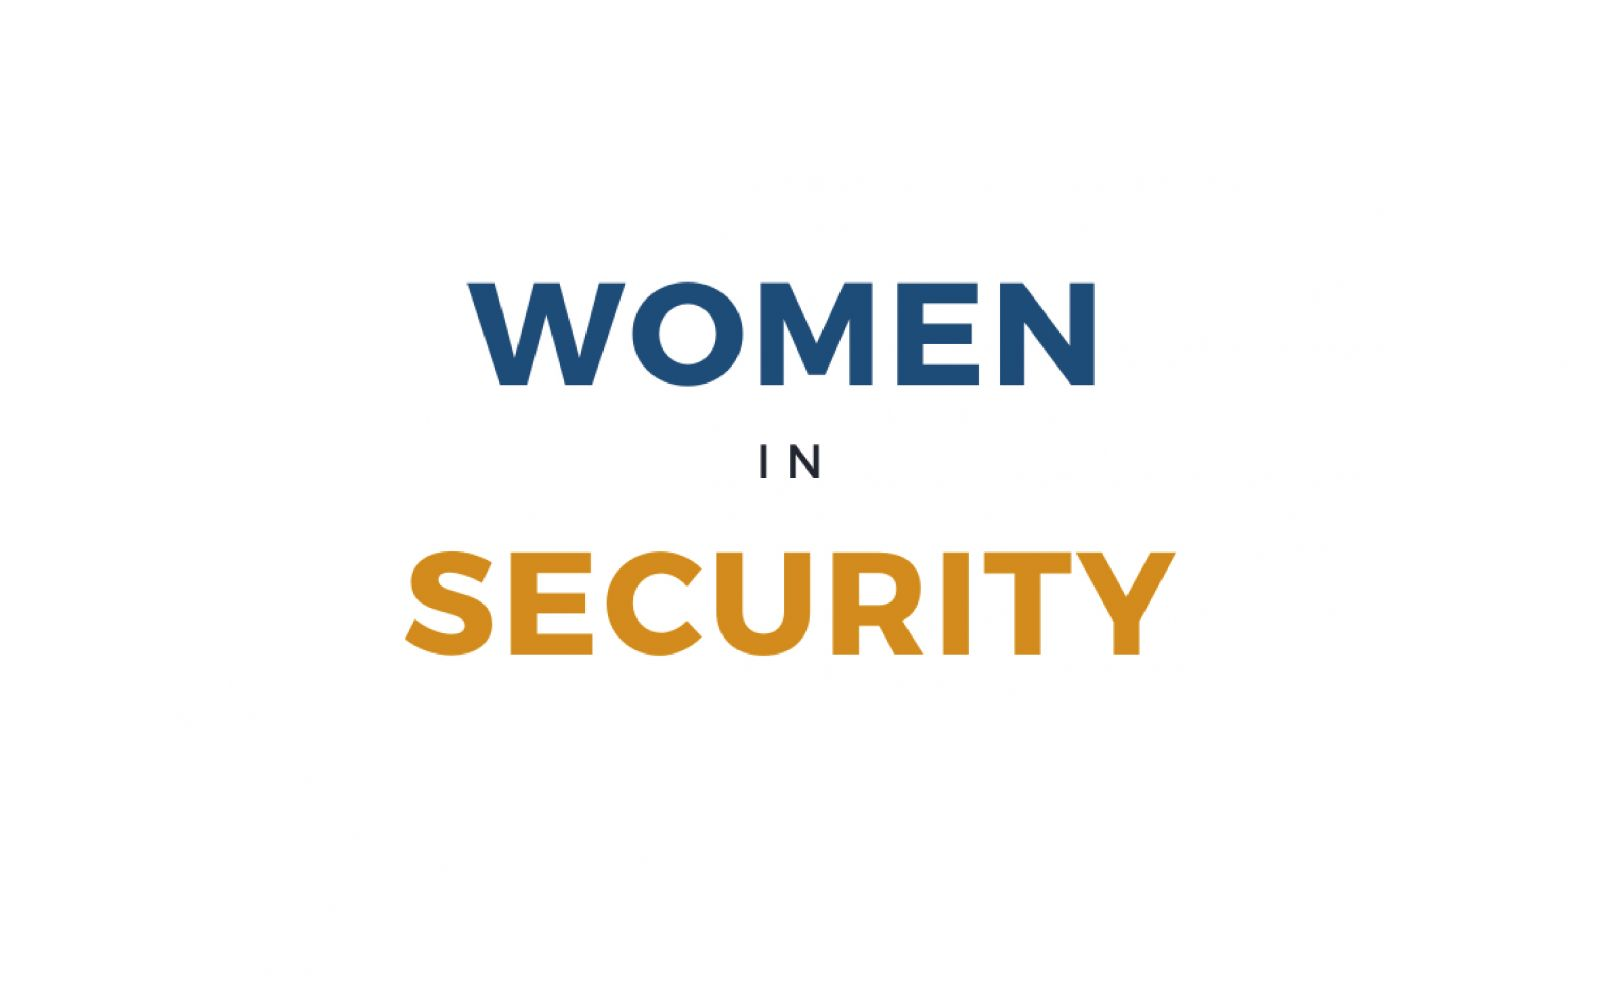 New Industry Research: Women in Security